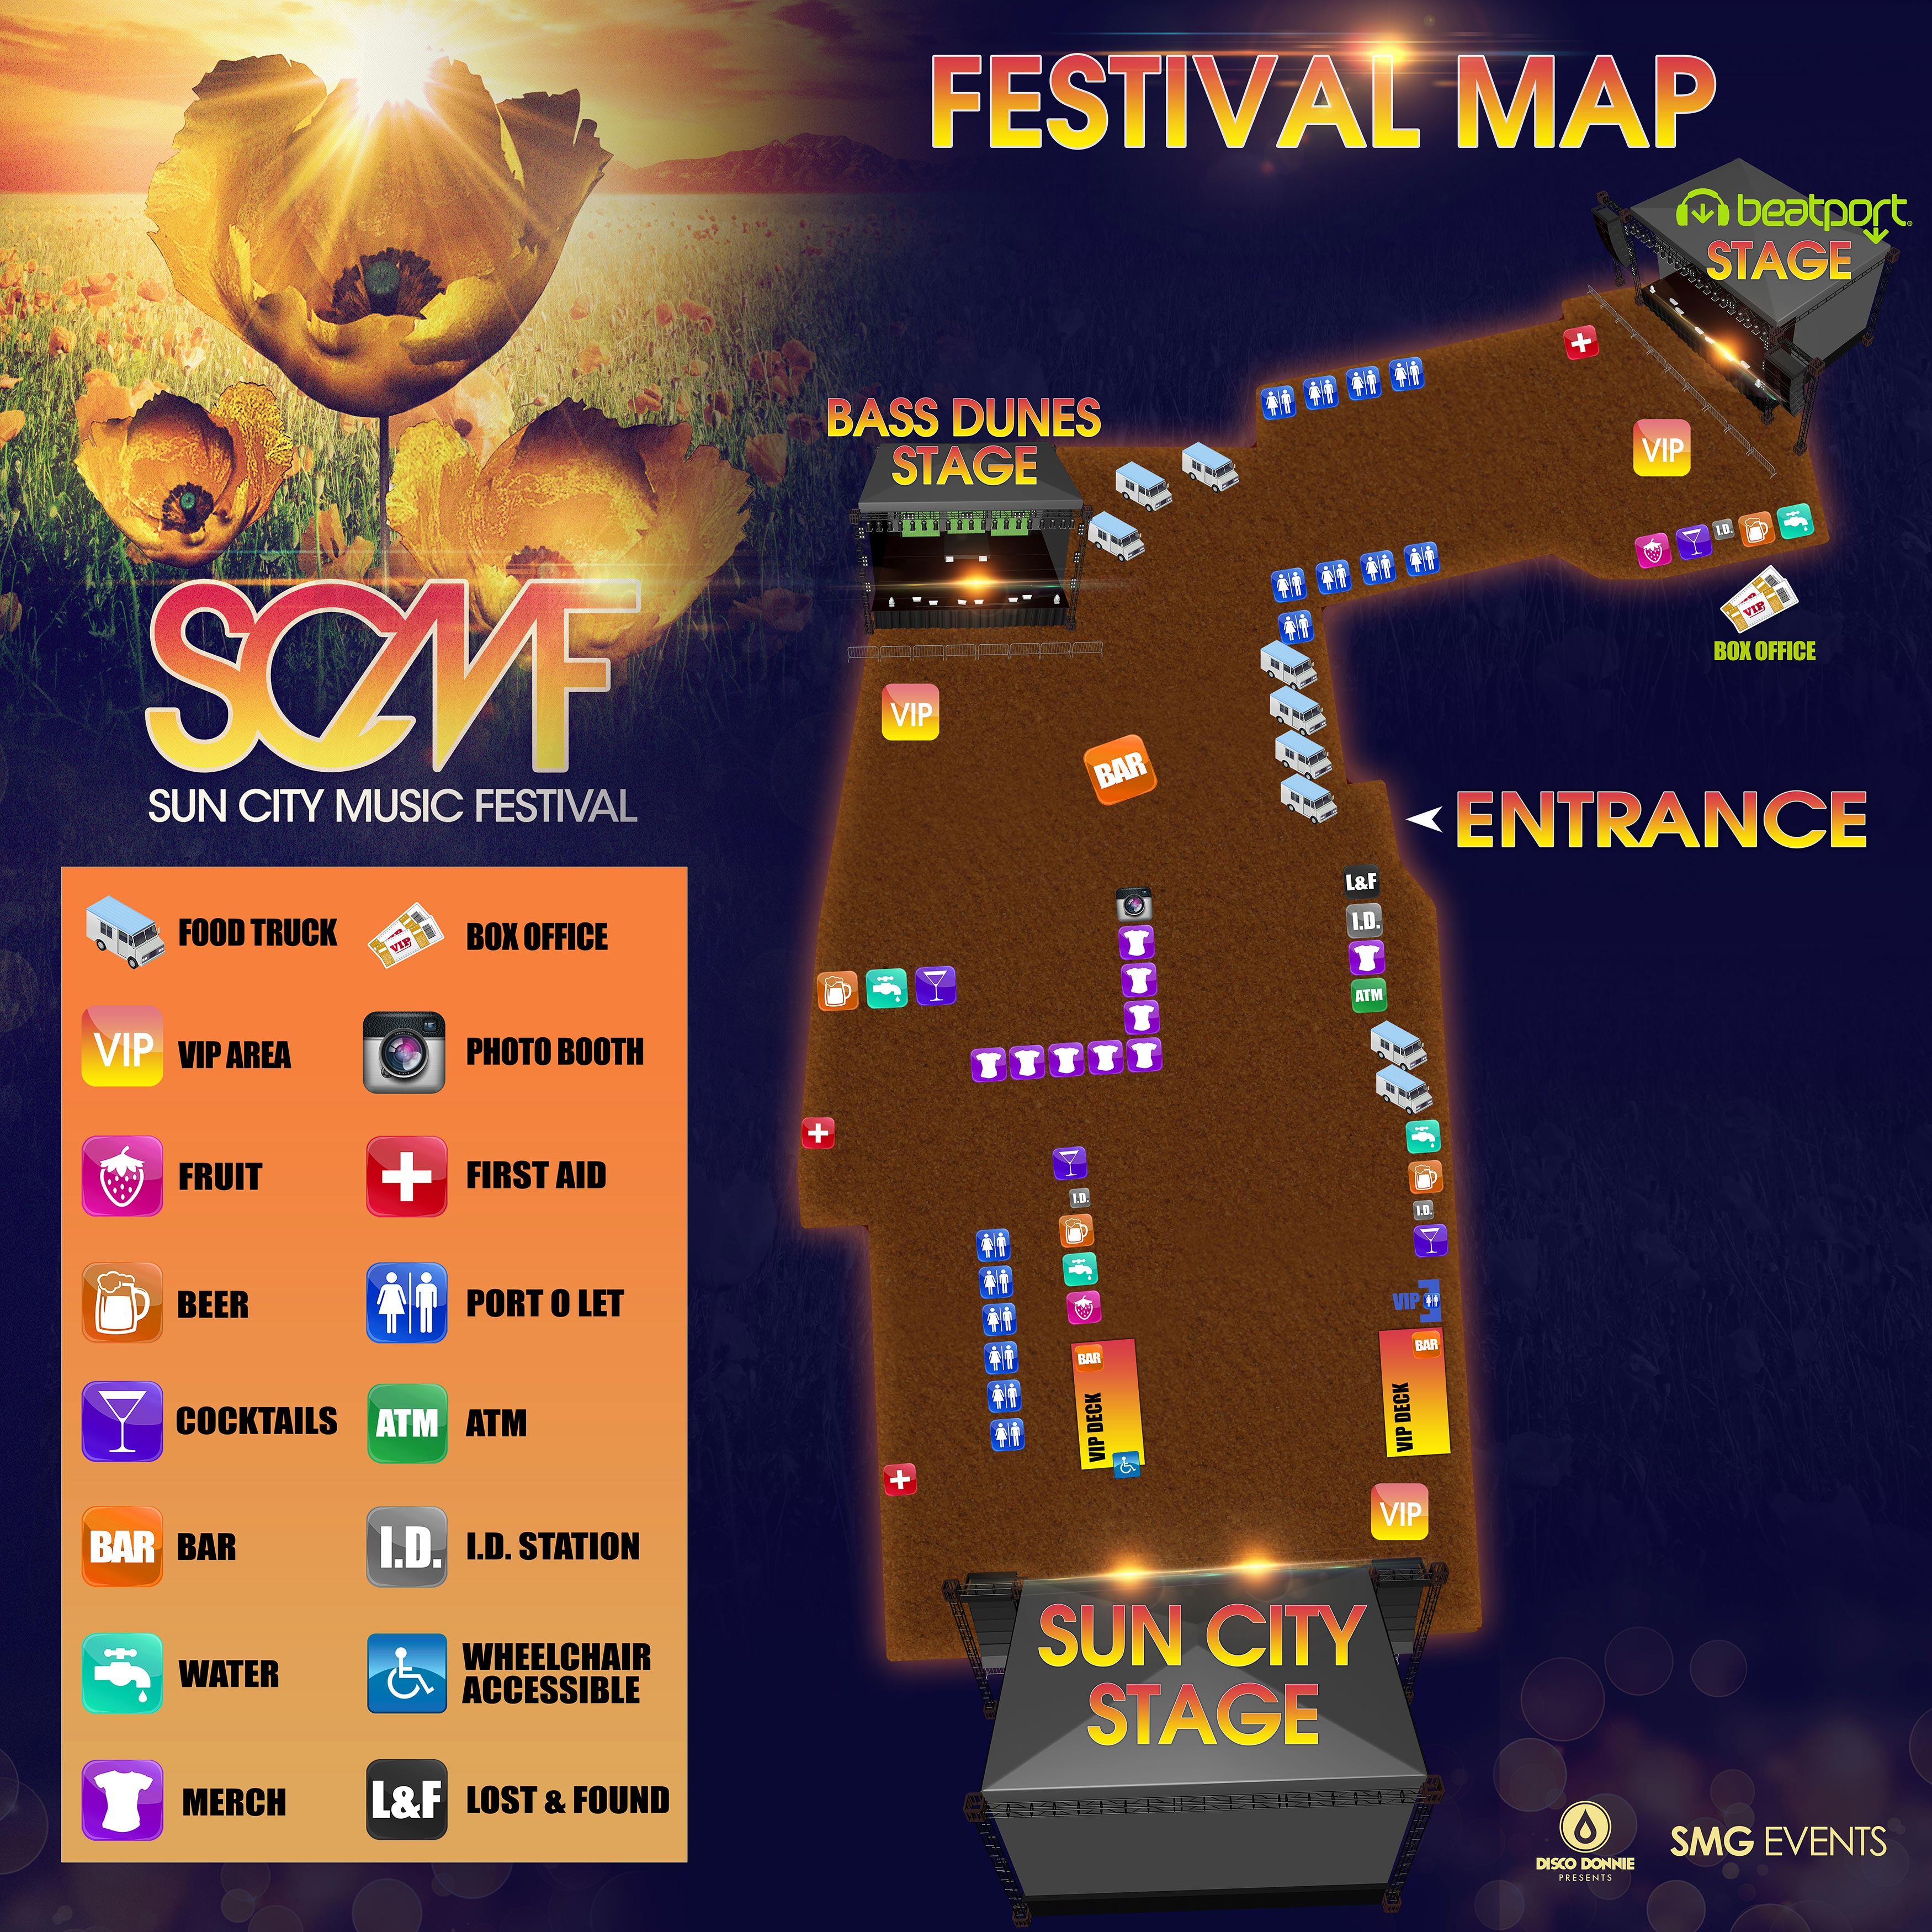 Sun City Music Festival 2014 News and Updates